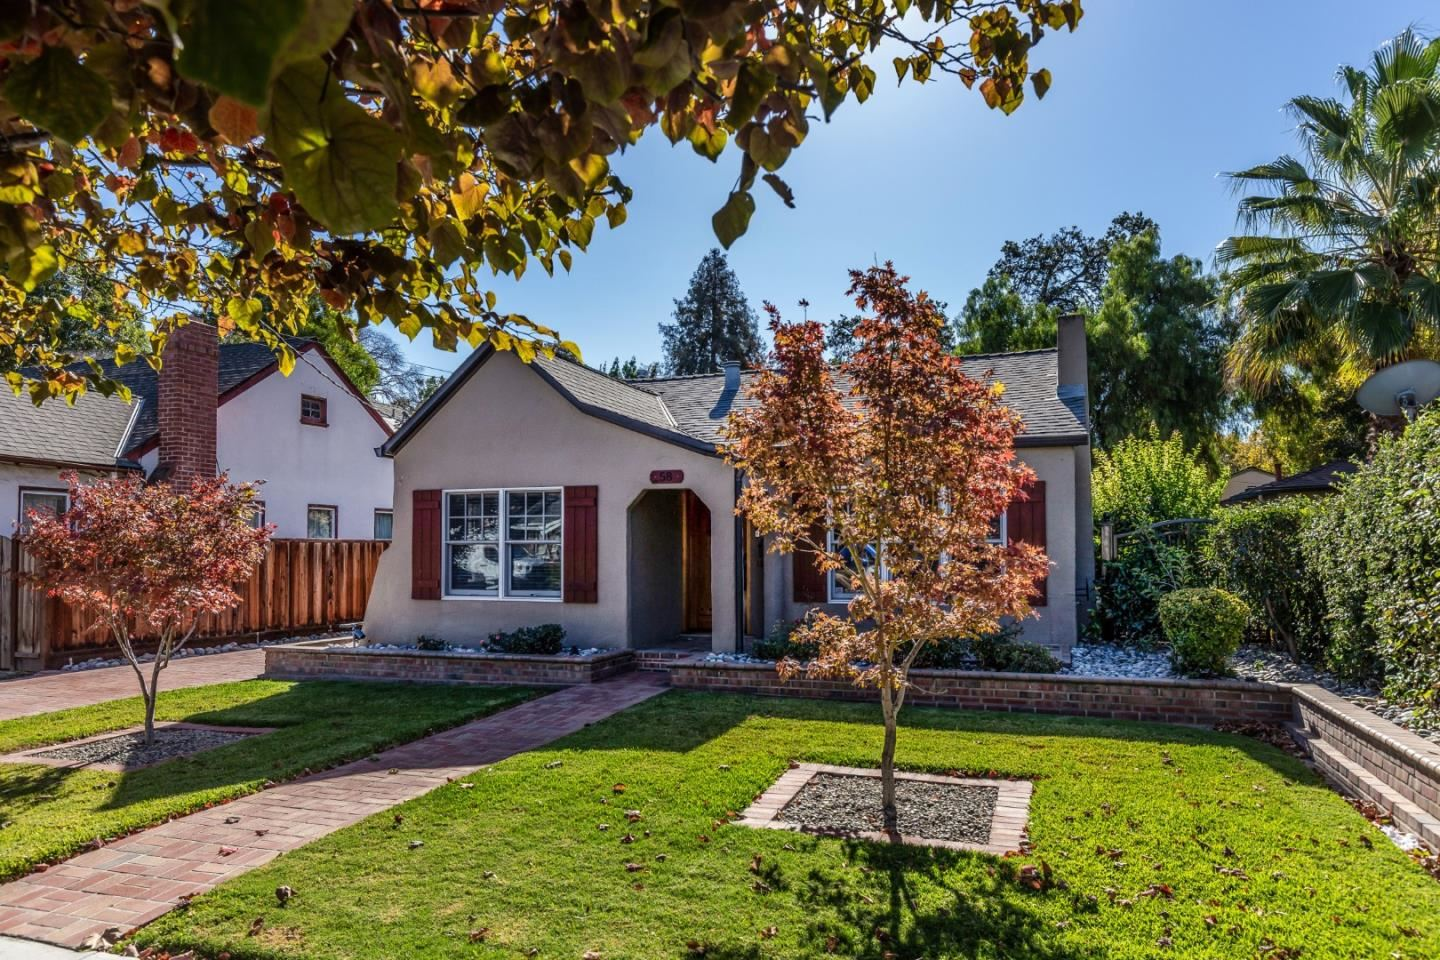 Photo for 58 East Younger Avenue, SAN JOSE, CA 95112 (MLS # ML81866838)